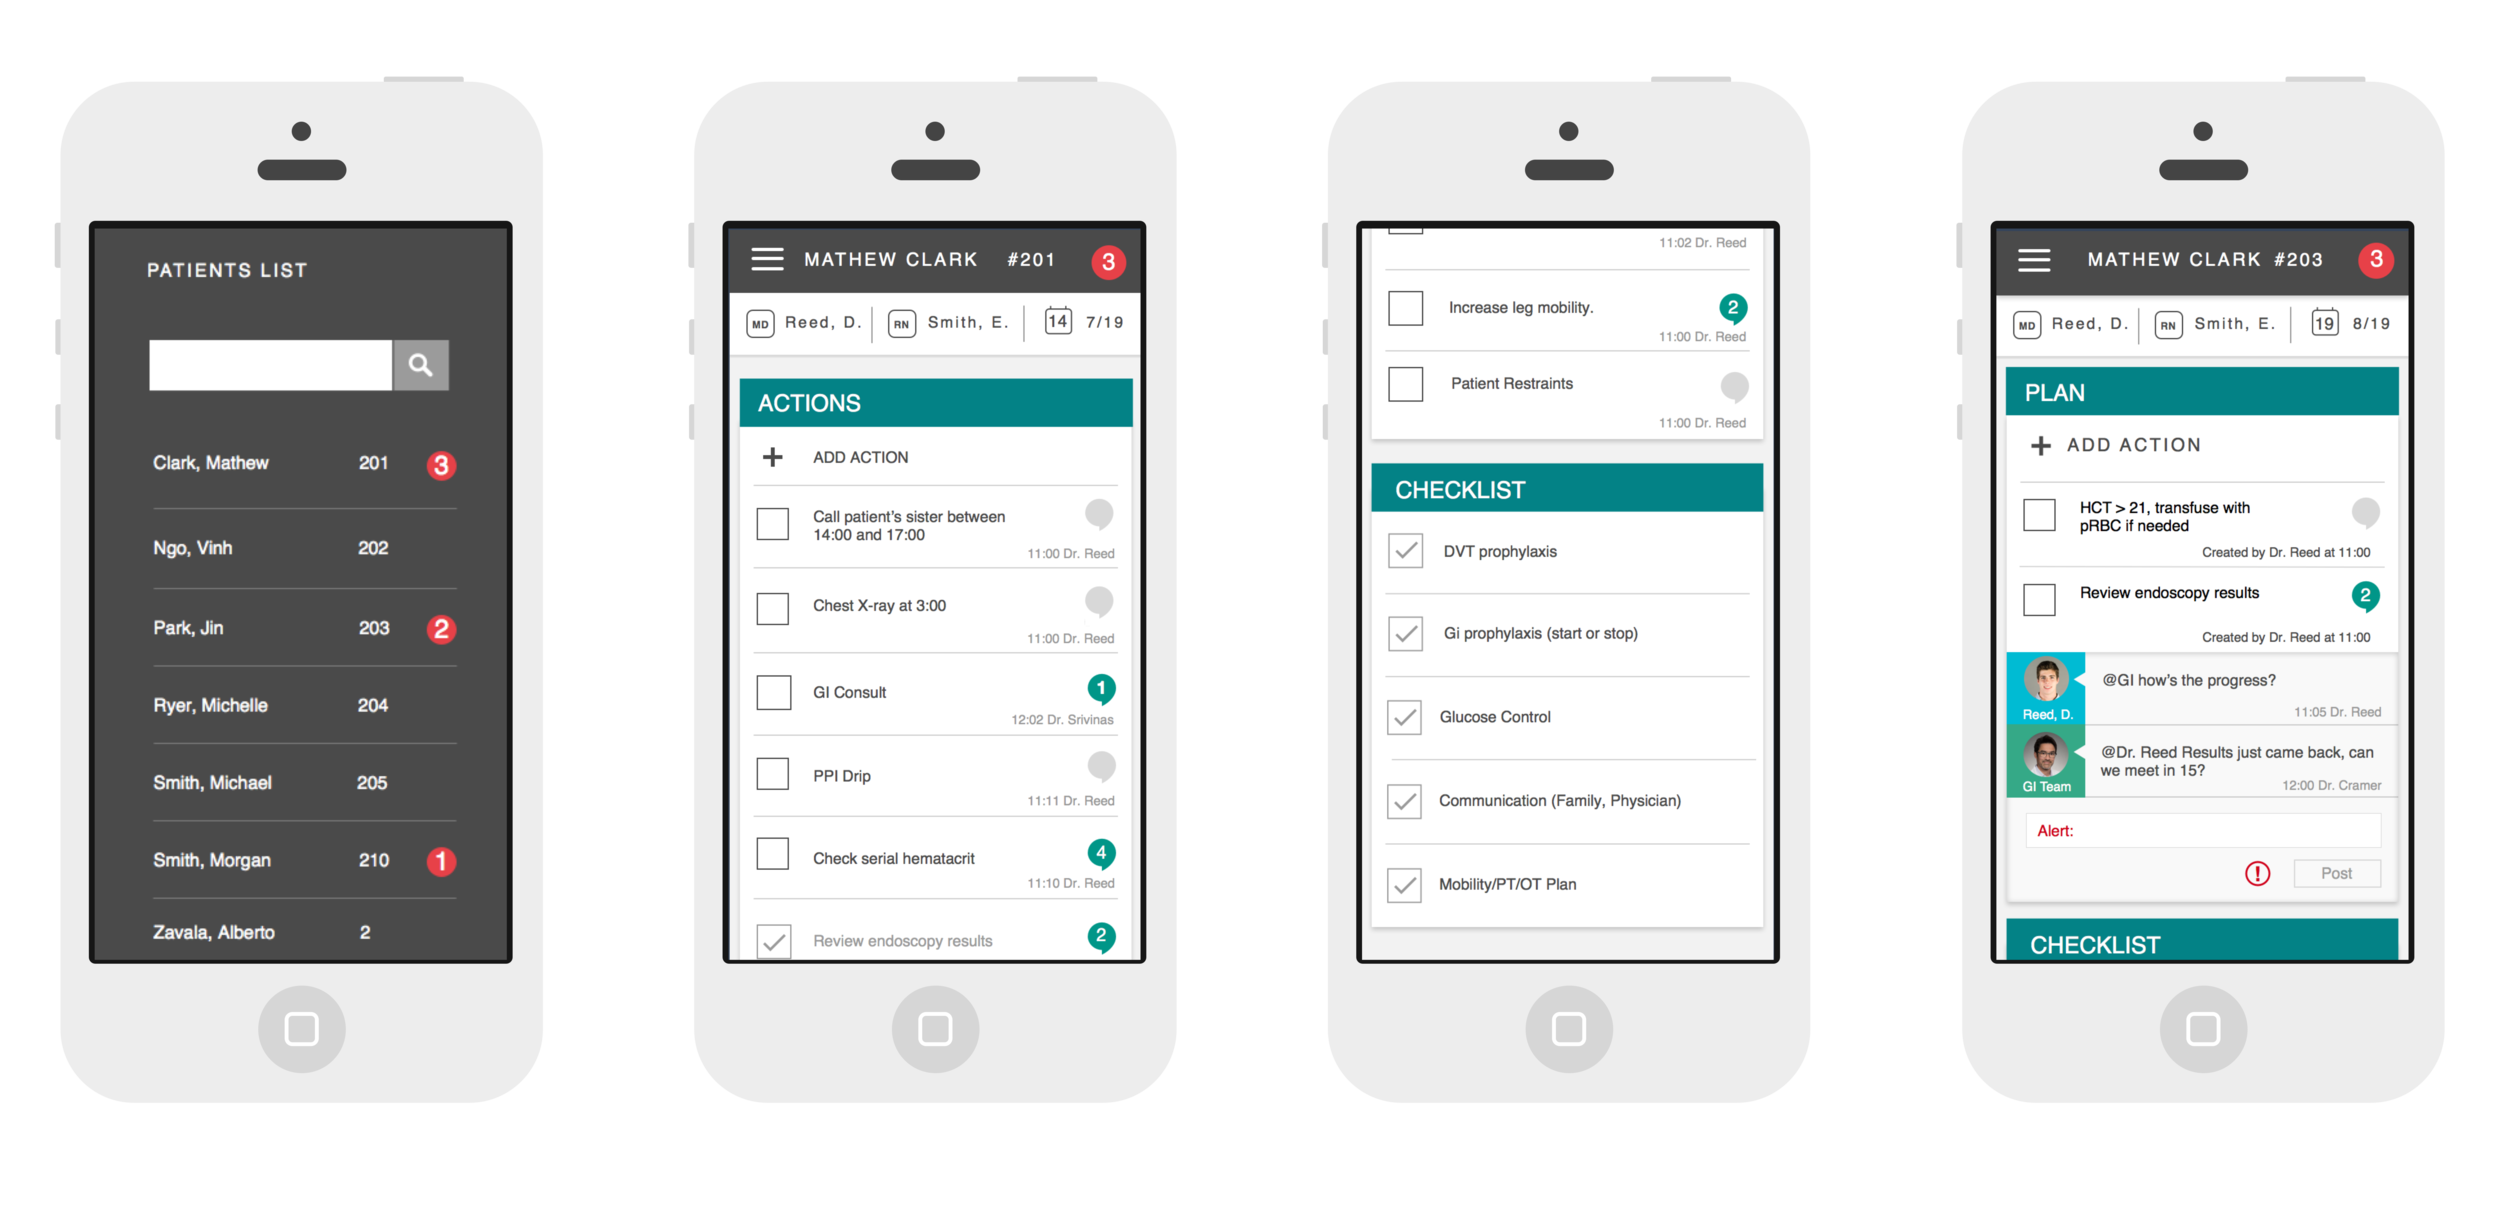 Mobile screens showing the patient selection screen, care plan, and comment view